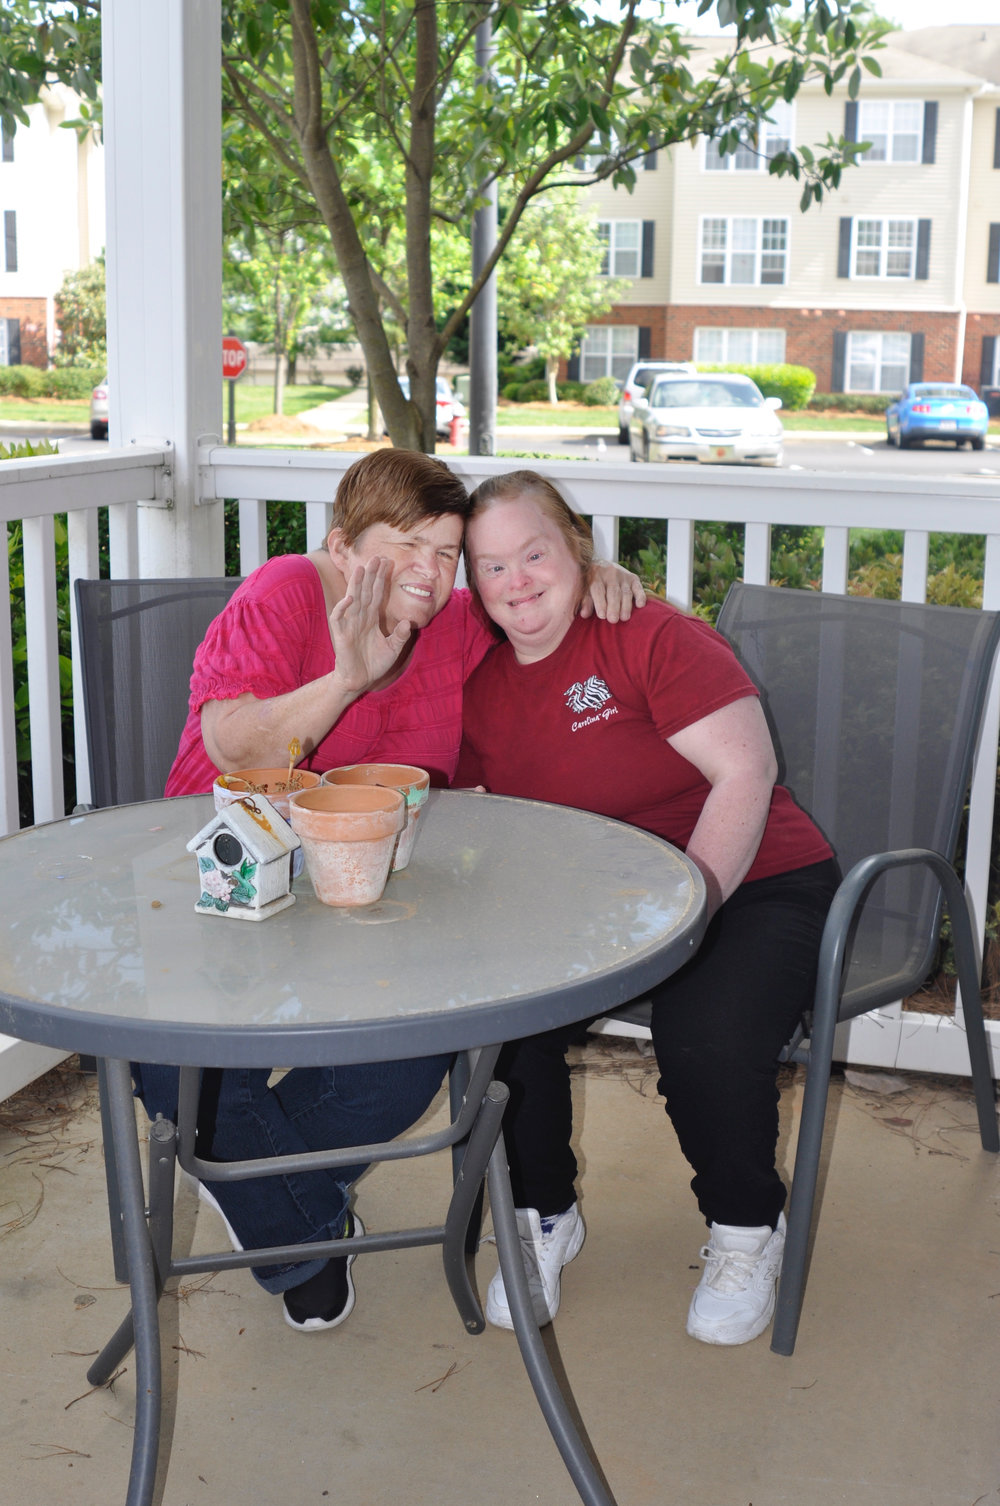 Image: Two women, Laura and Vicki, smile as they sit at a table. One of the women waves at the camera. (Source: SimplyHome photos)